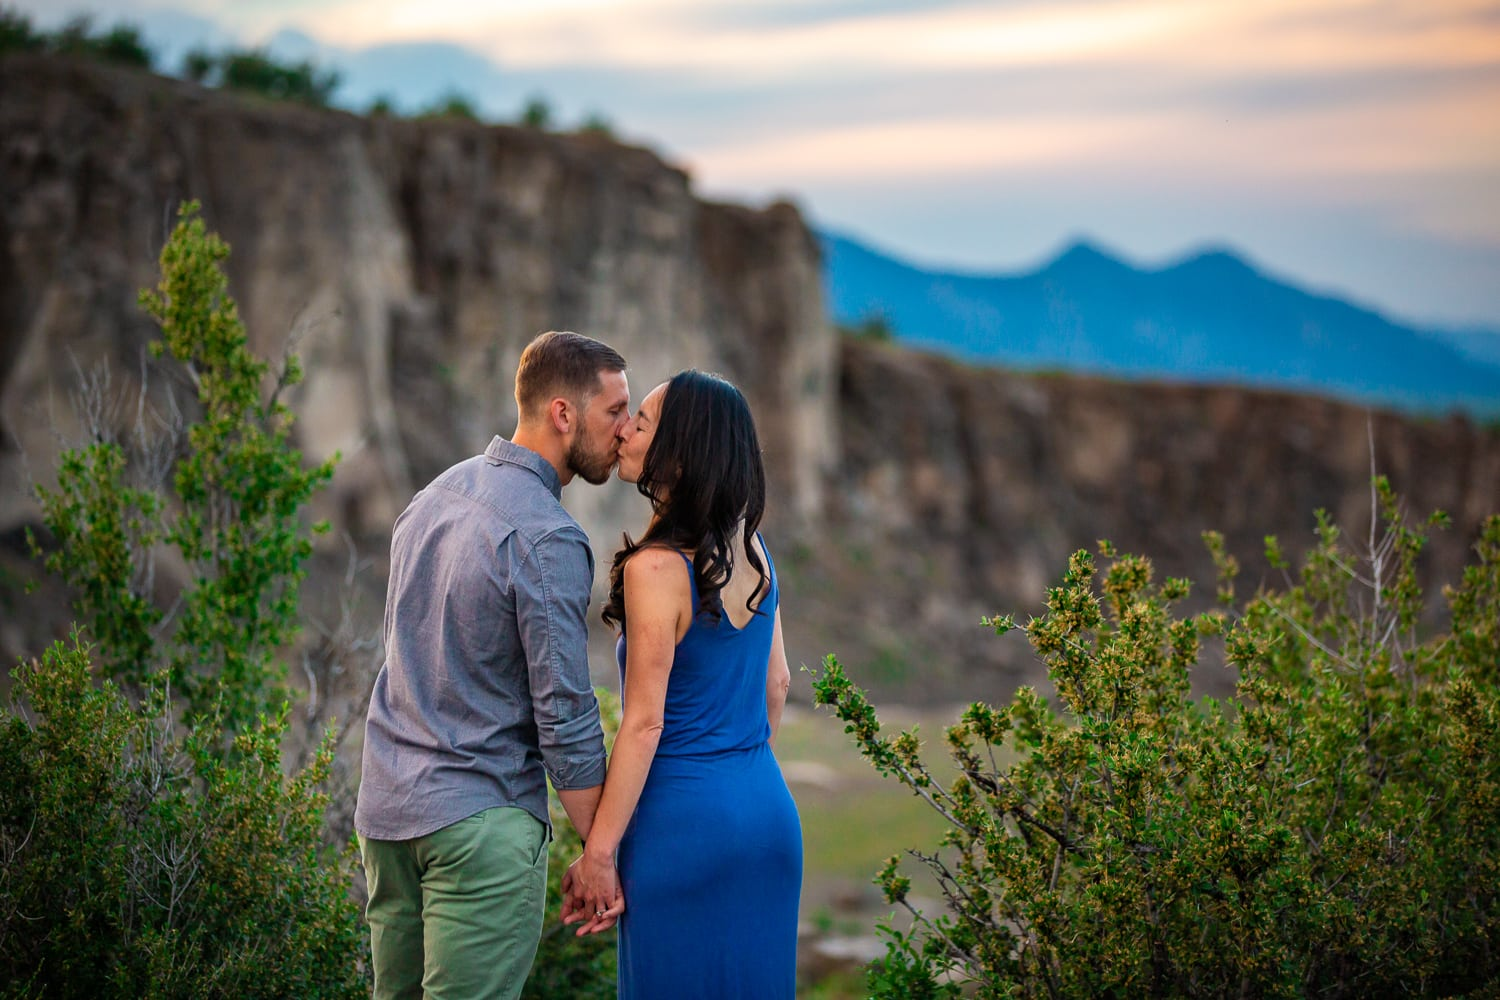 An engagement photographer in Golden Colorado takes a photo of a couple kissing with mountains in the background.